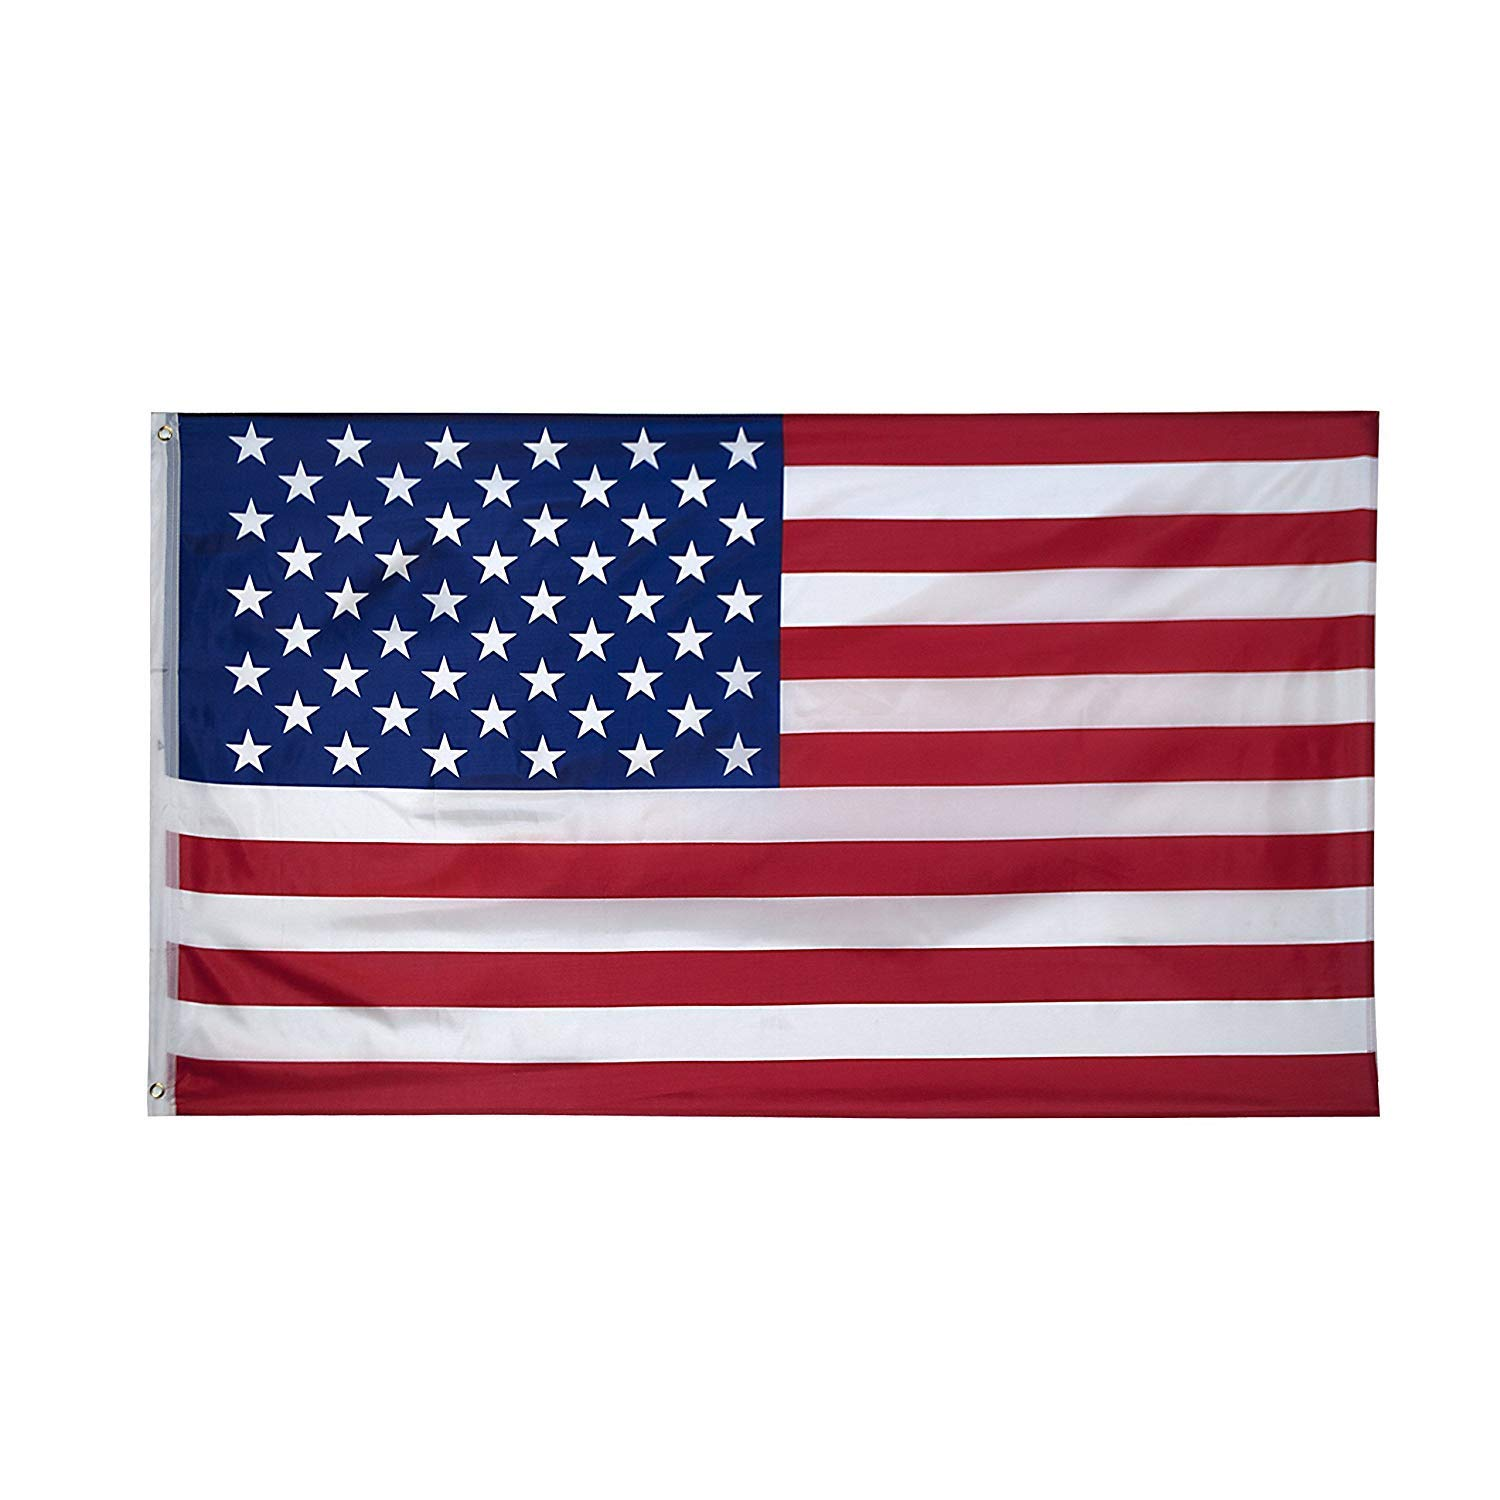 UV coated US flag for non-fading, long lasting usage! Great price!